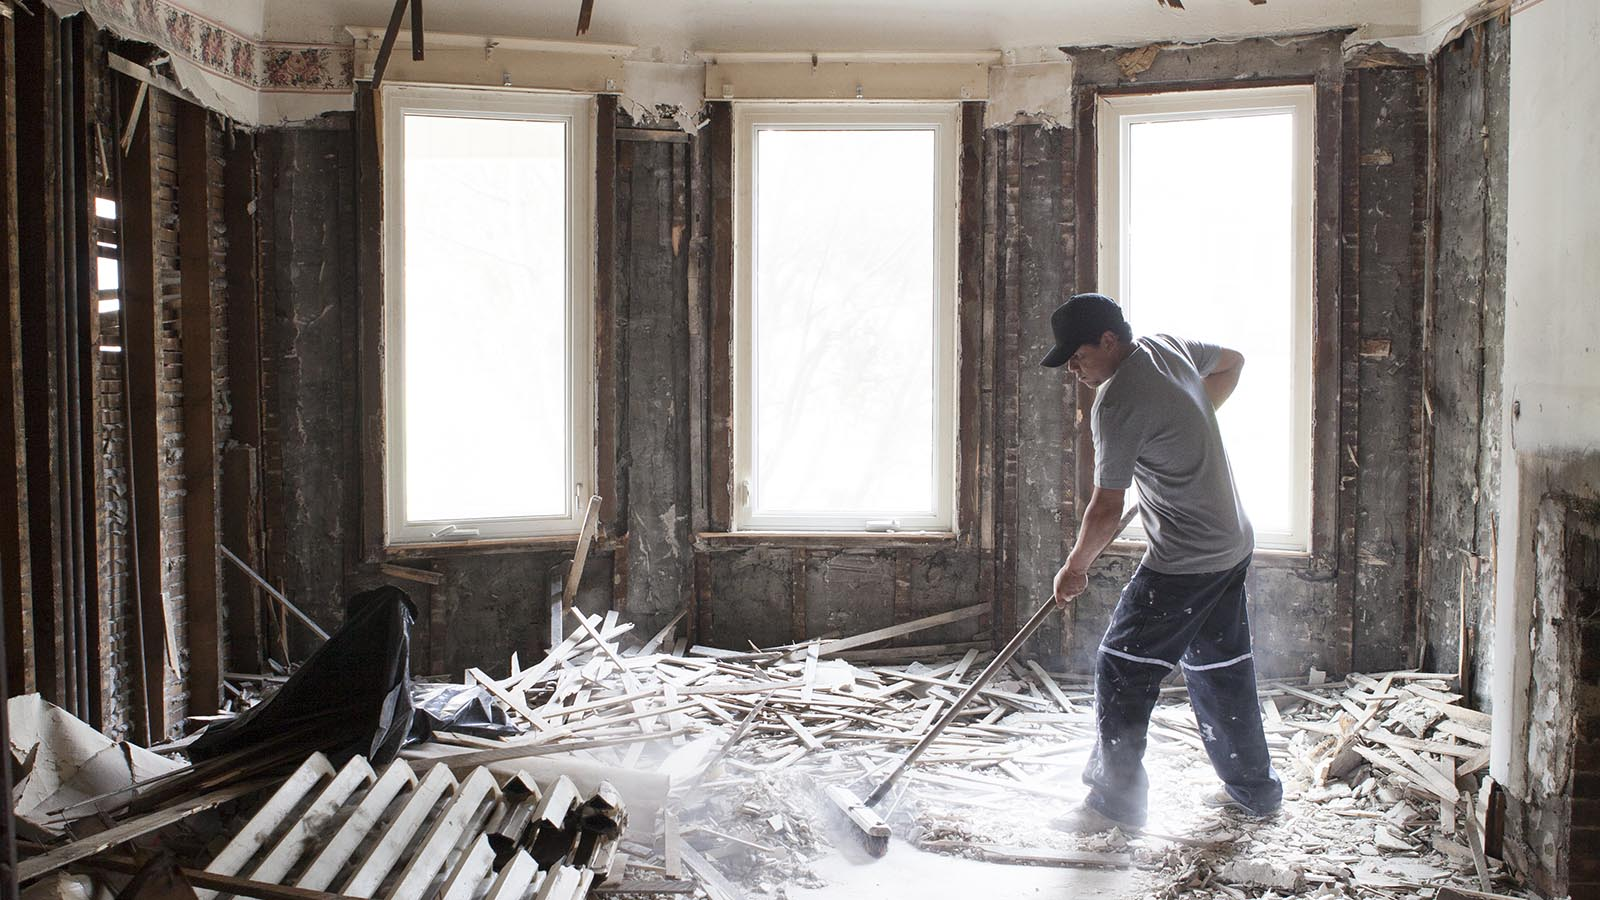 Http Www Macleans Ca Economy Realestateeconomy The Dark Side Of The Renovation Boom